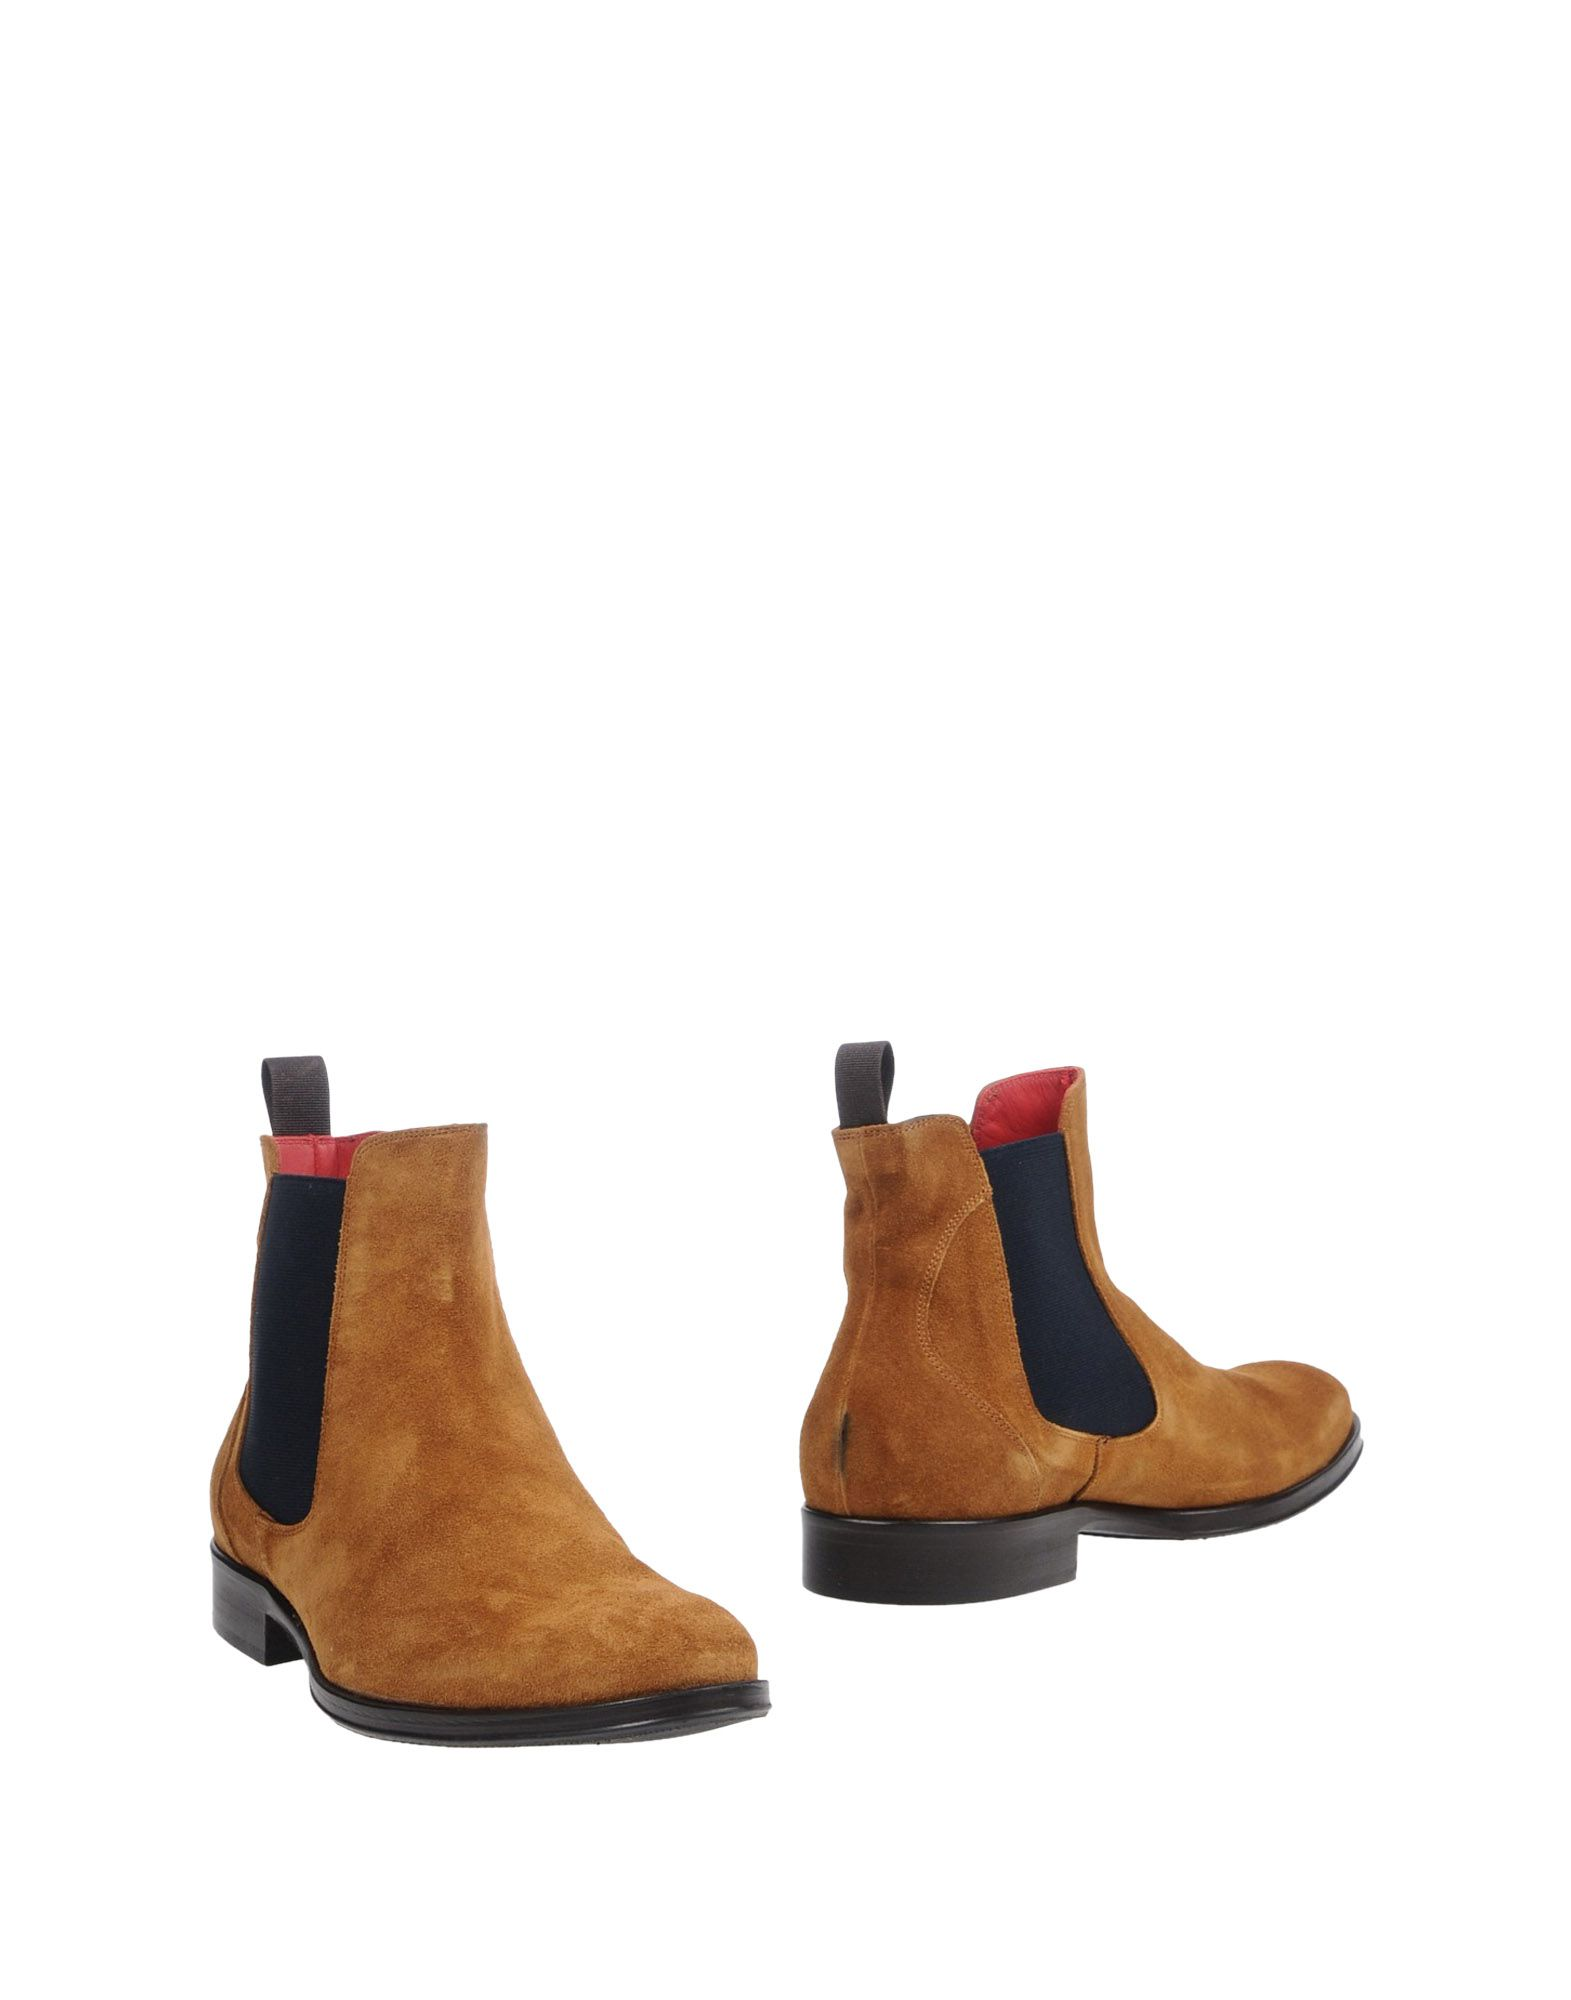 Bottine Gianfranco Lattanzi Homme - Bottines Gianfranco Lattanzi  Camel Nouvelles chaussures pour hommes et femmes, remise limitée dans le temps